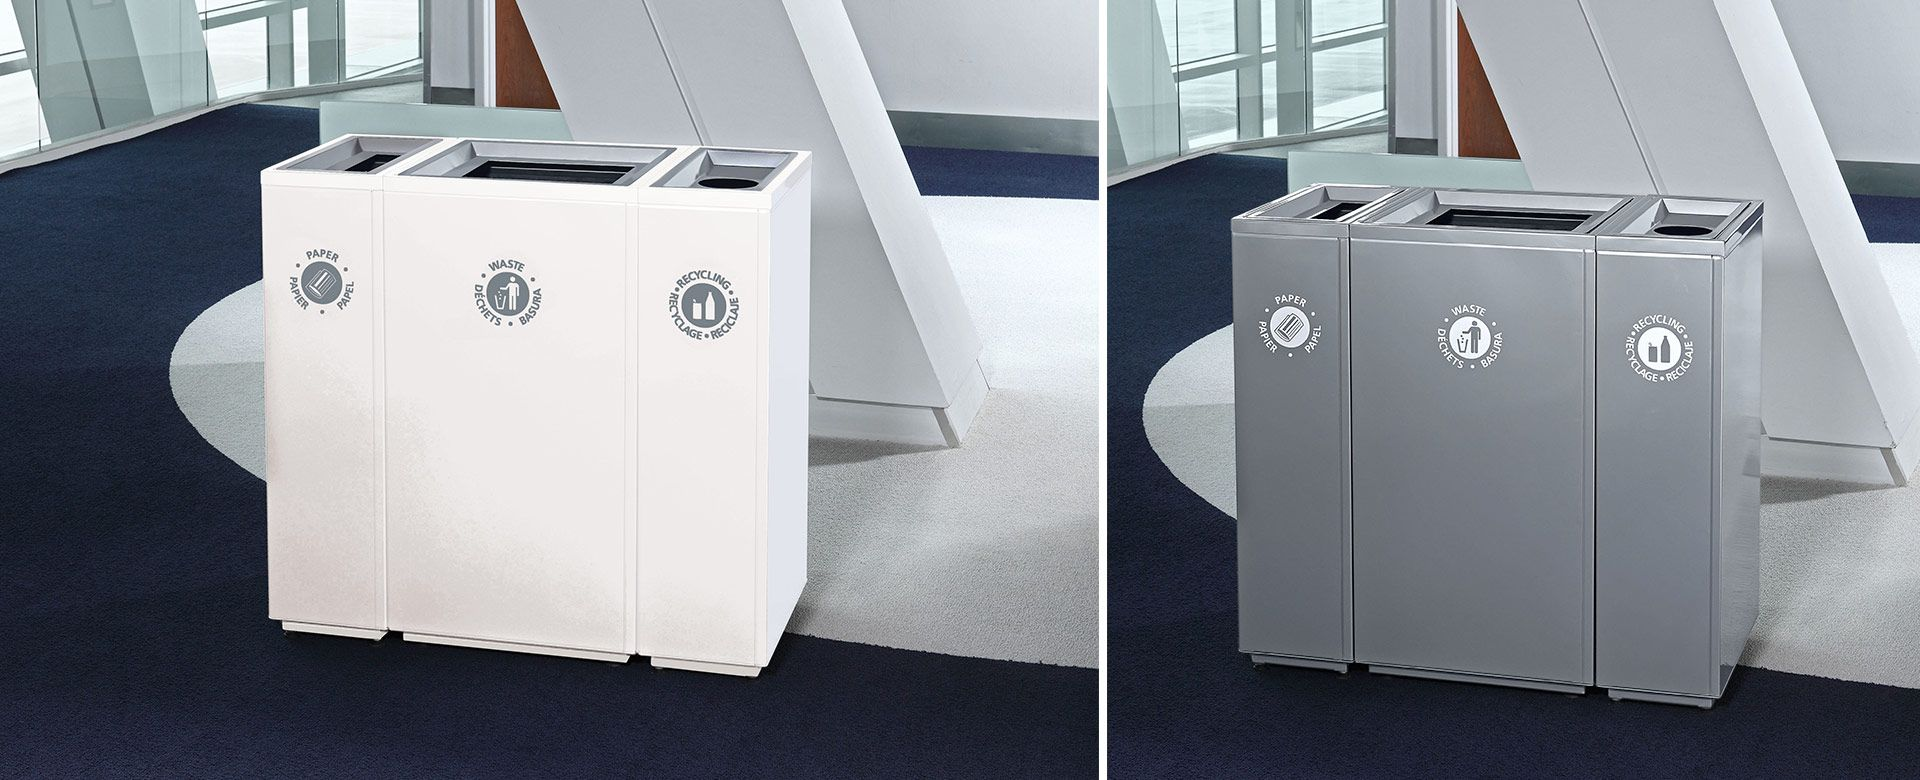 Magnuson Group Valuta Waste Receptacles | miscellaneous products ...